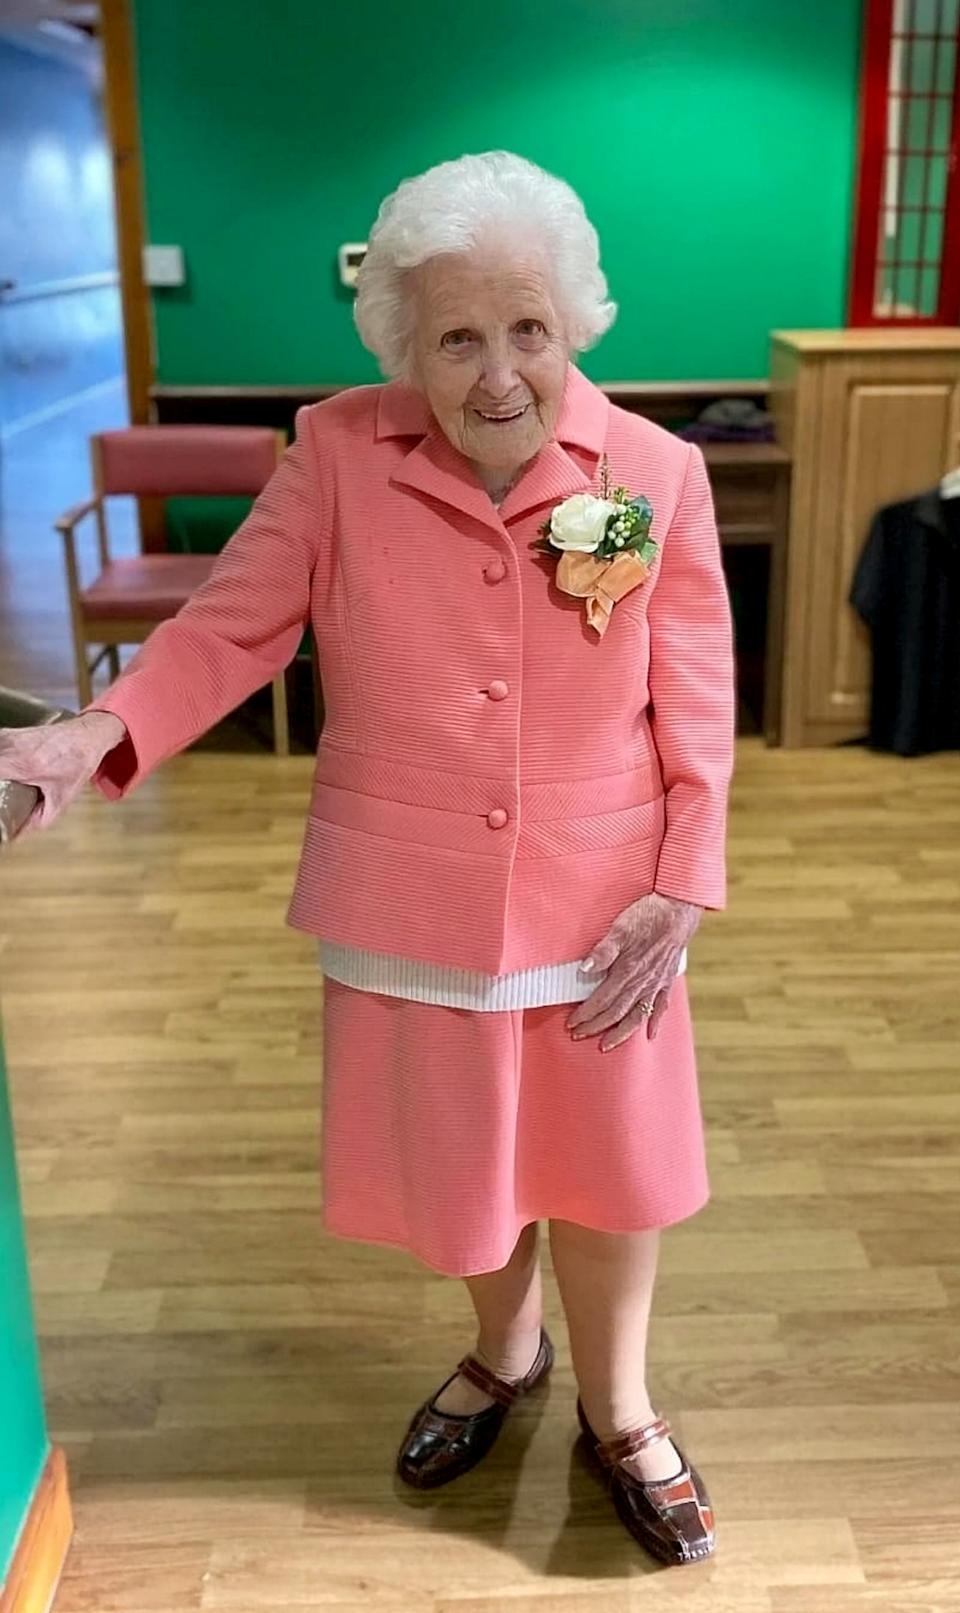 Her family and friends joined her celebrations at a nursing home in Scotland. [Photo: SWNS]